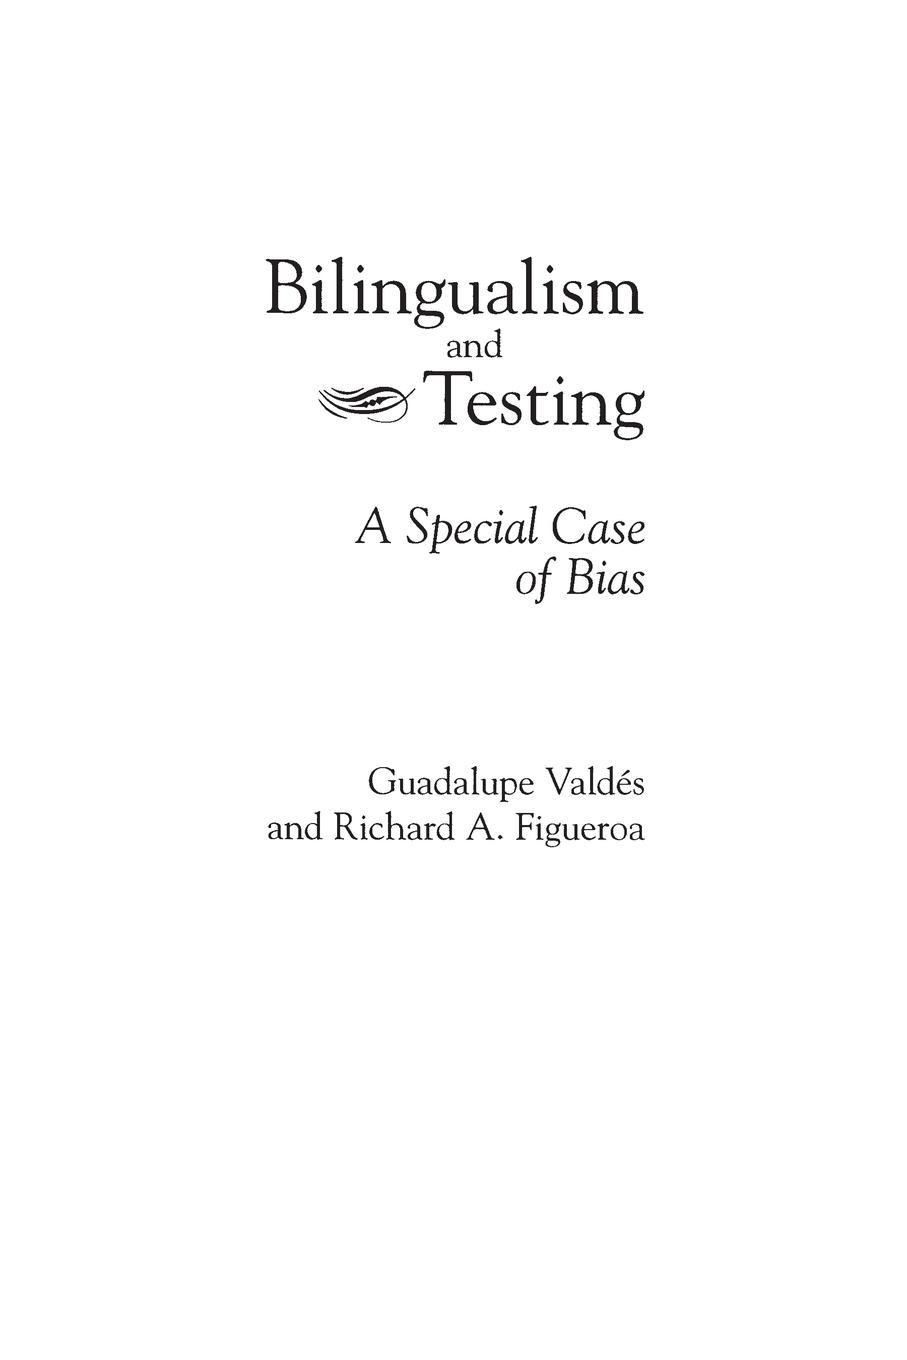 Richard Figueroa Bilingualism and Testing. A Special Case of Bias english language and bilingualism